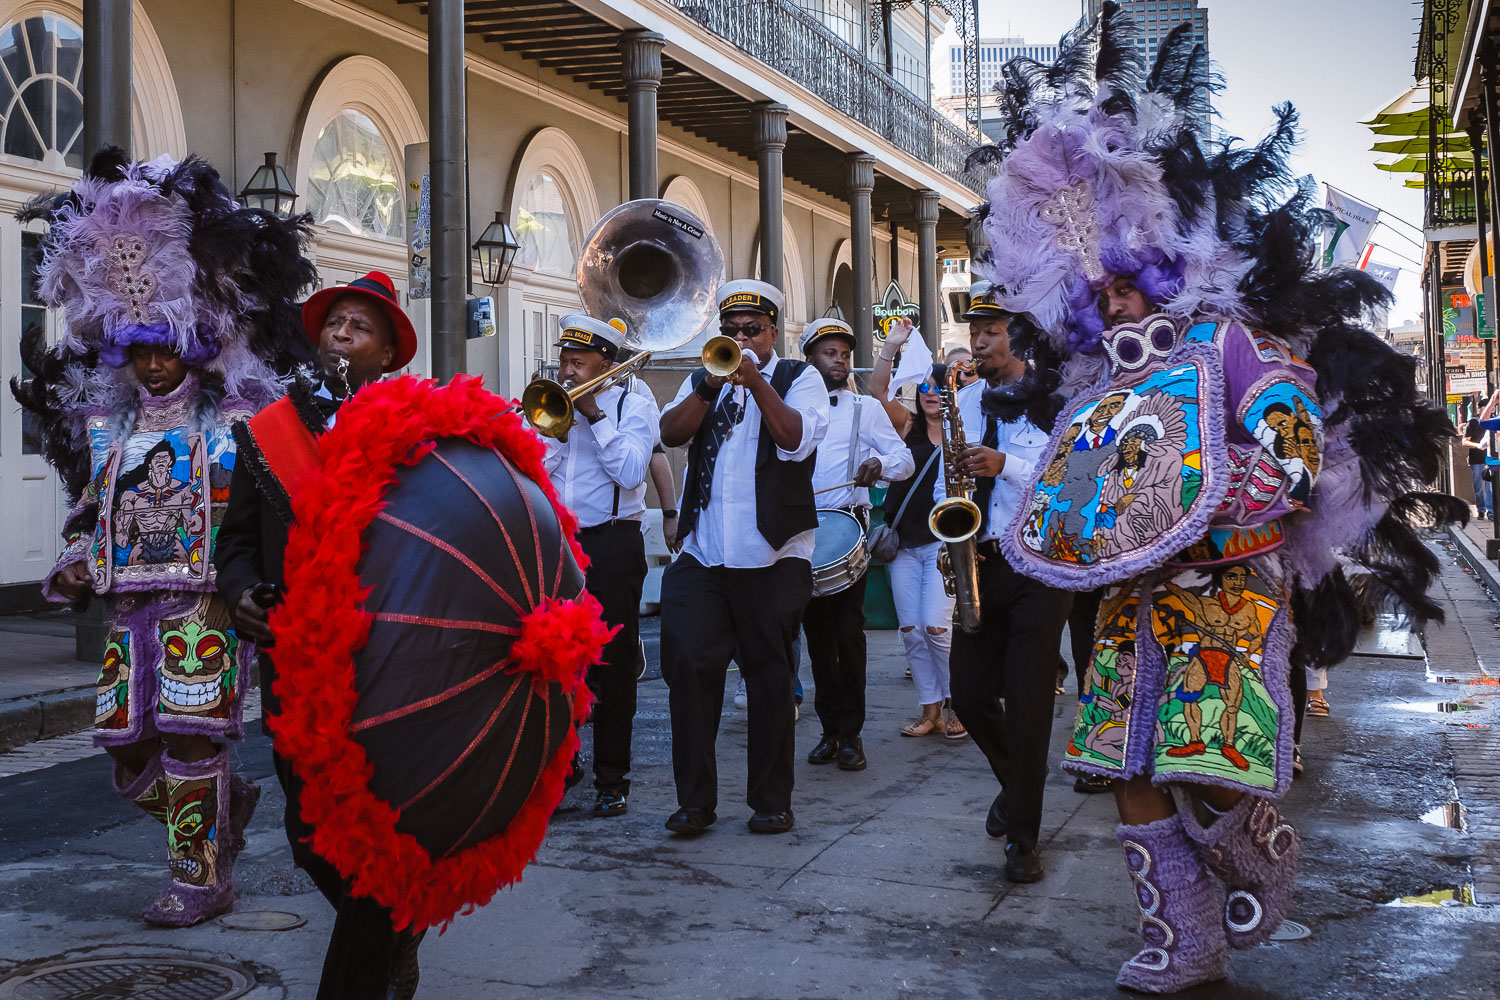 """Let loose in New Orleans with this long-weekend travel guide. Travel photography and guide by © Natasha Lequepeys for """"And Then I Met Yoko"""". #neworleans #nola #travelguide #photoblog #travelblog #travelphotography #streetphotography #travelitinerary #fujifilm #usa #visitnola #foodie #secondline #jazz #music #weekendgetaway #party #burbonstreet #travel #neworleans3dayitinerary"""